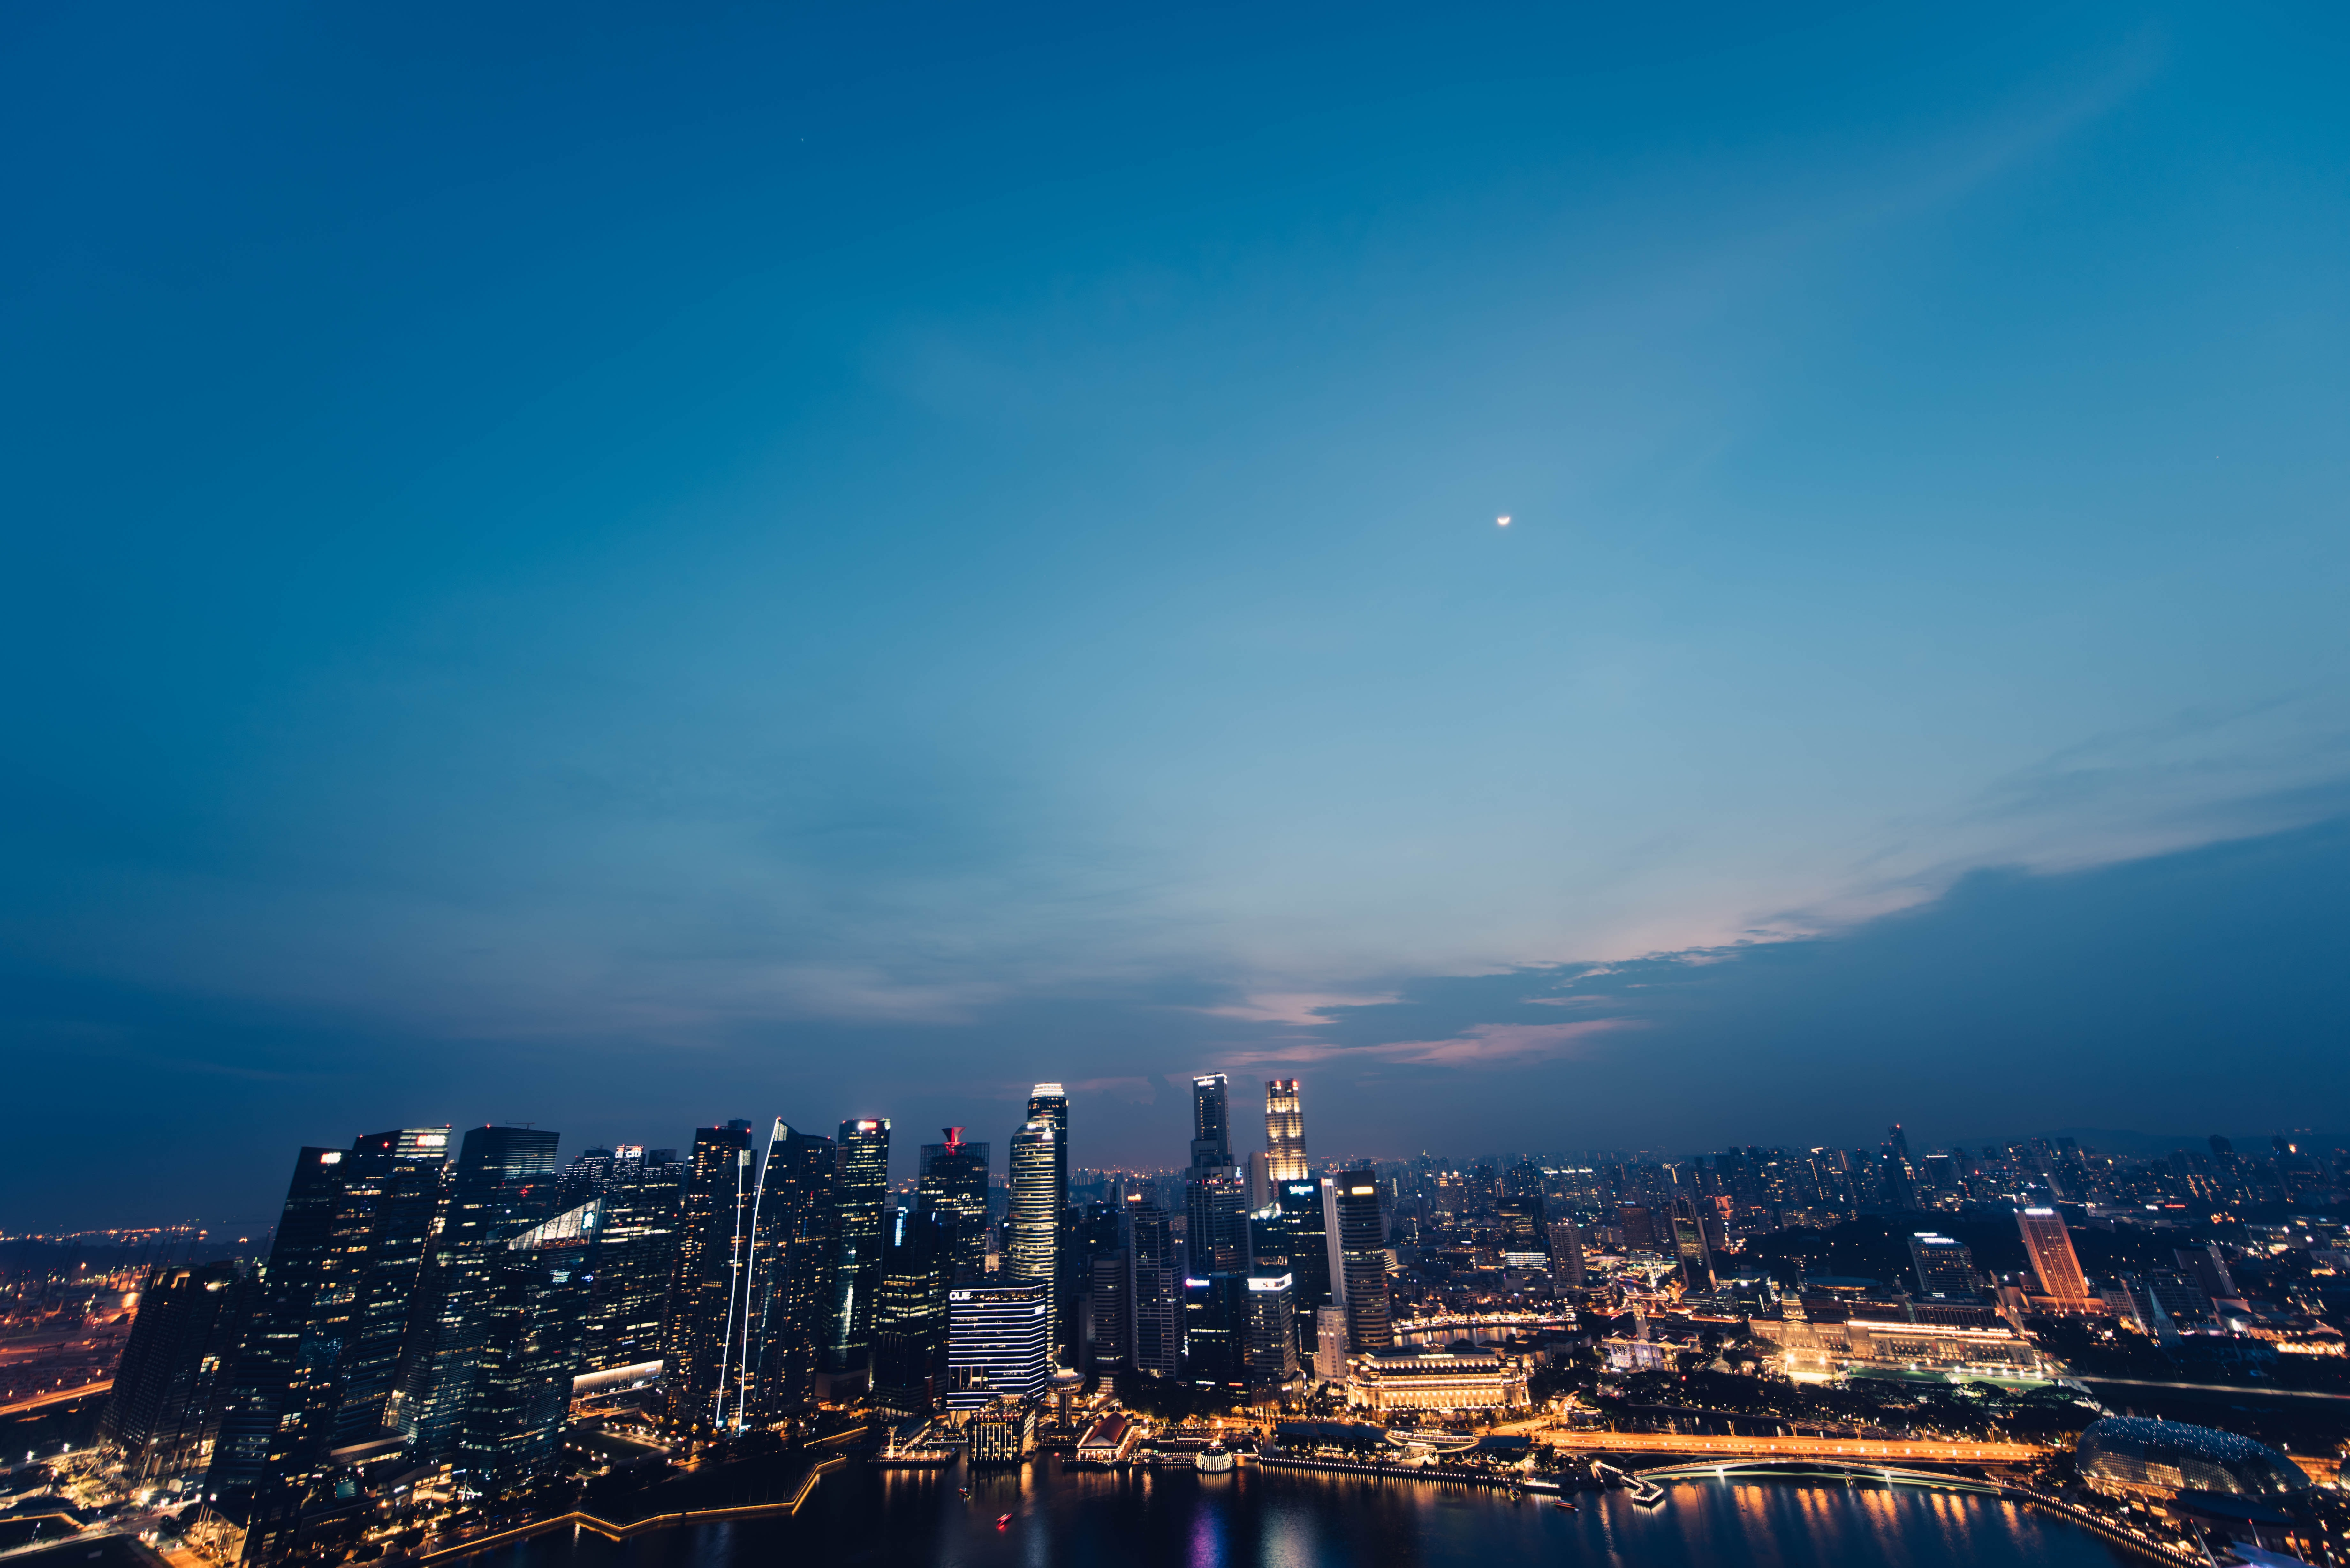 A panoramic shot of the skyscrapers and skyline of Singapore at nightfall.